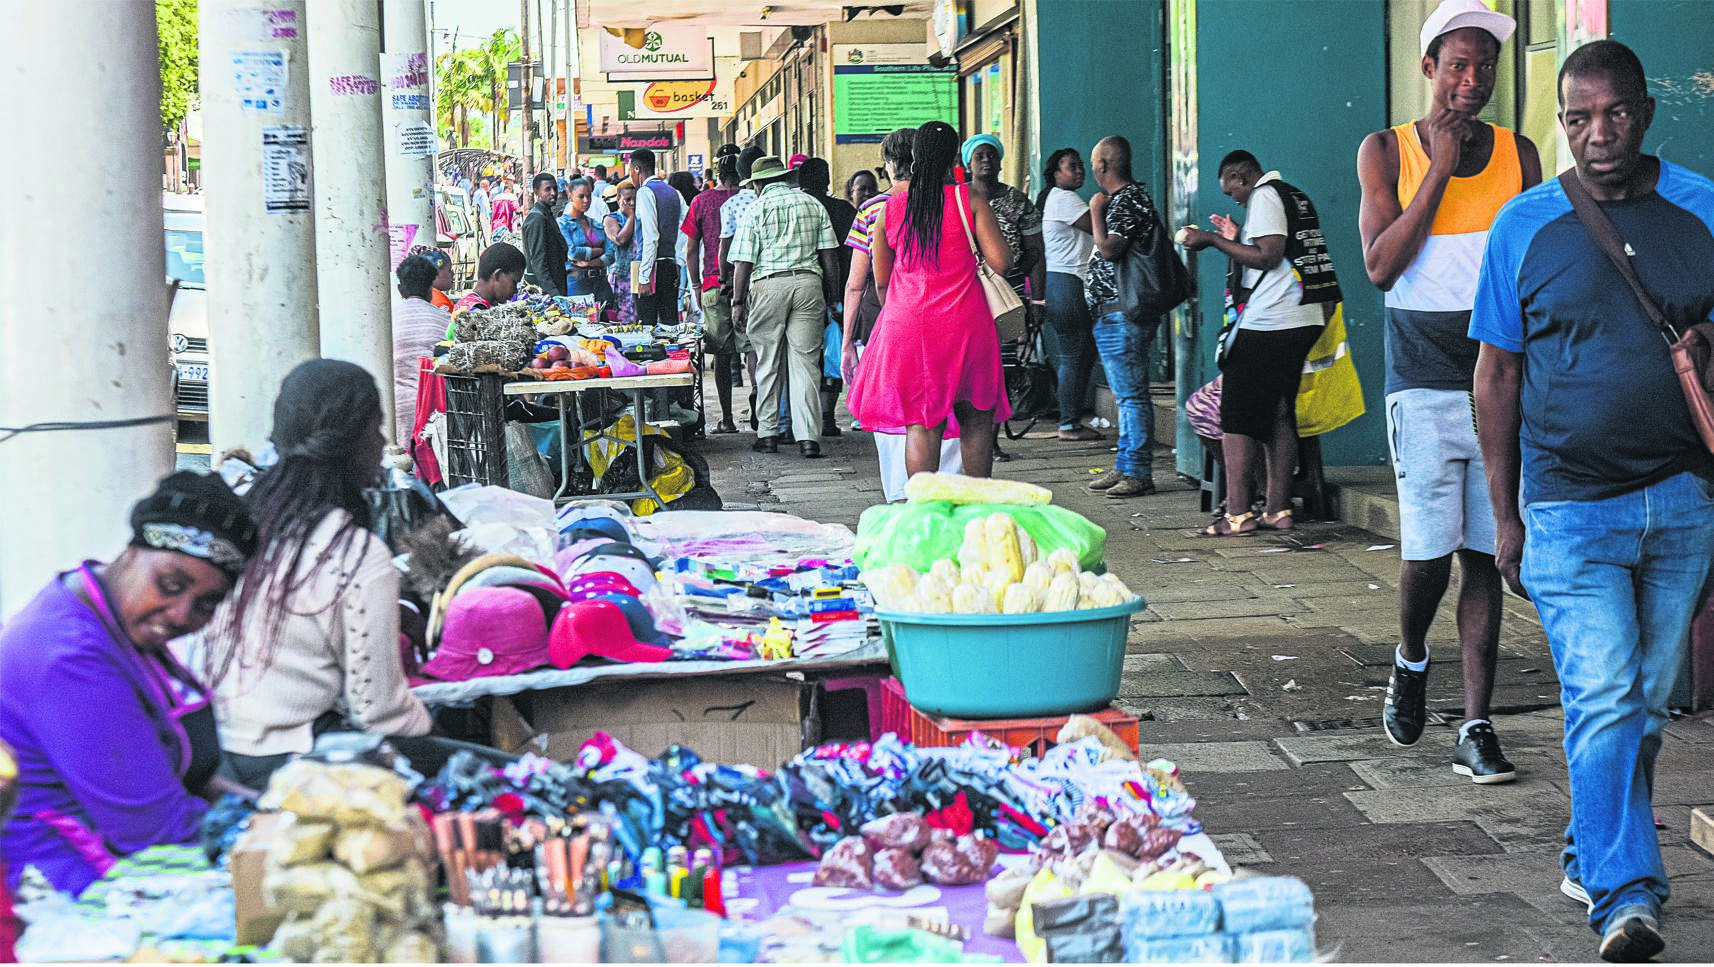 Street vendors selling a variety of items on Church Street. PHOTO: moeketsi mamane